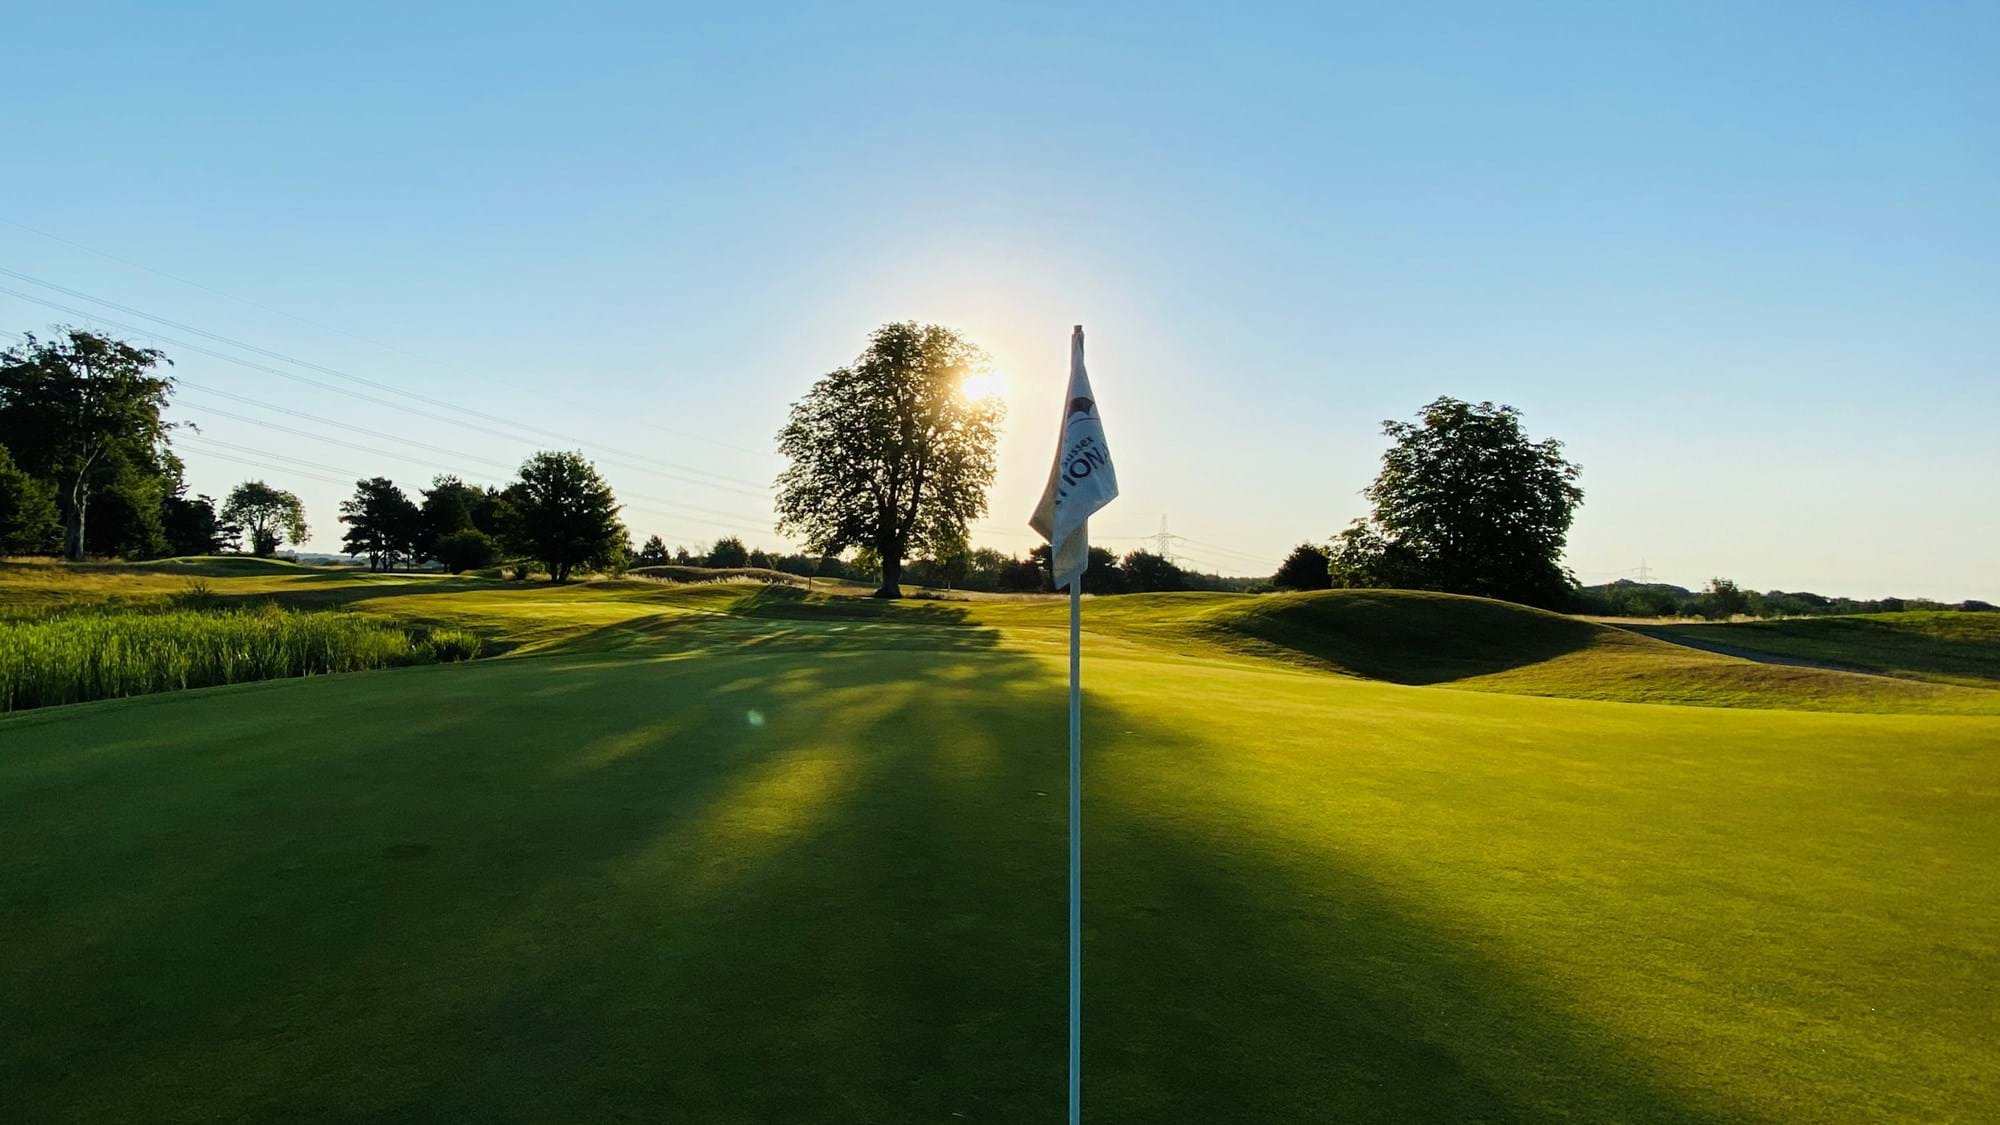 East Sussex national golf hotel Uckfield